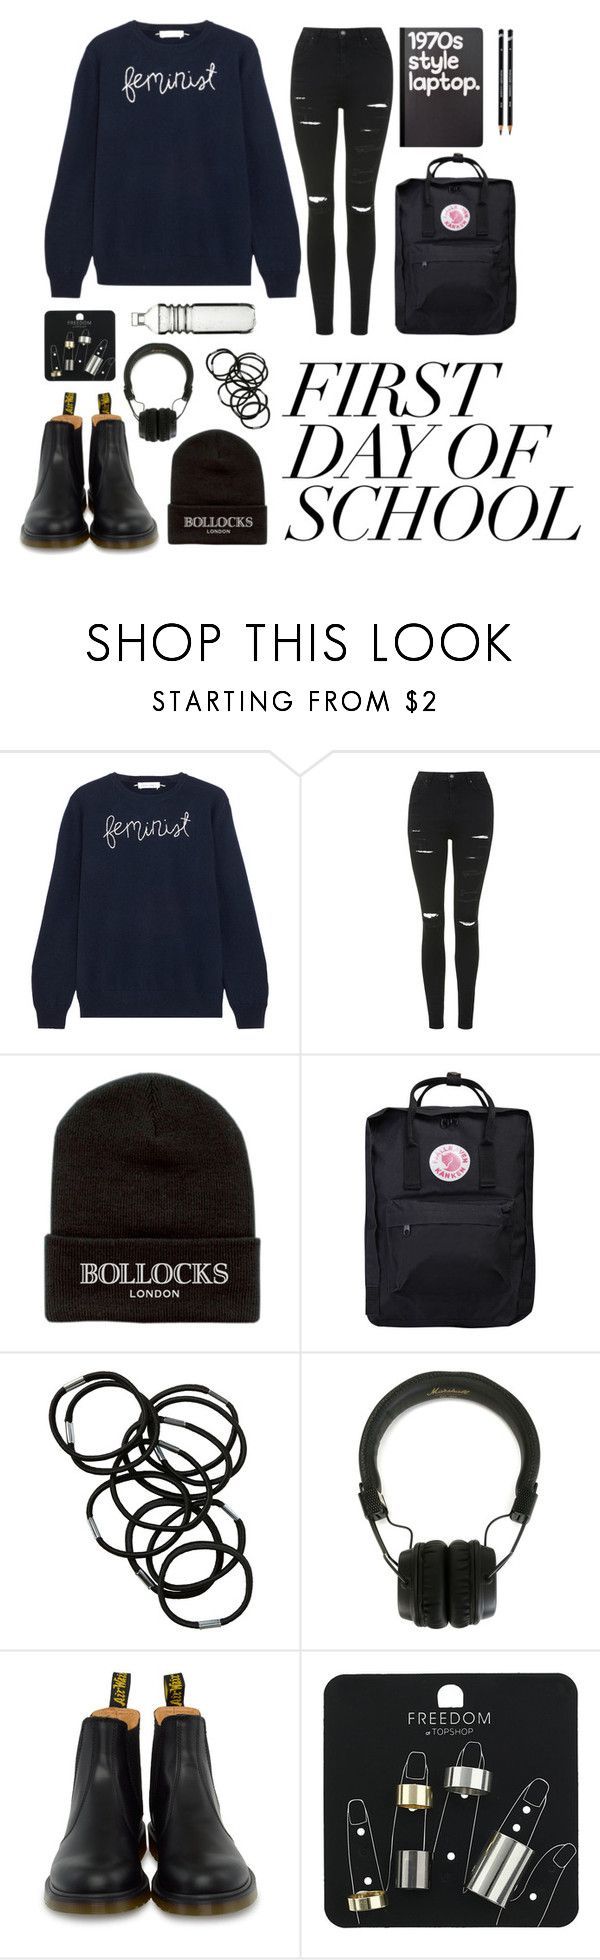 """Contest: First day of school - Feminist"" by shattered-masterpiece ❤ liked on Polyvore featuring Lingua Franca, Topshop, Petals and Peacocks, Fjällräven, Monki, Marshall, Retrò, Dr. Martens and Dot & Bo"